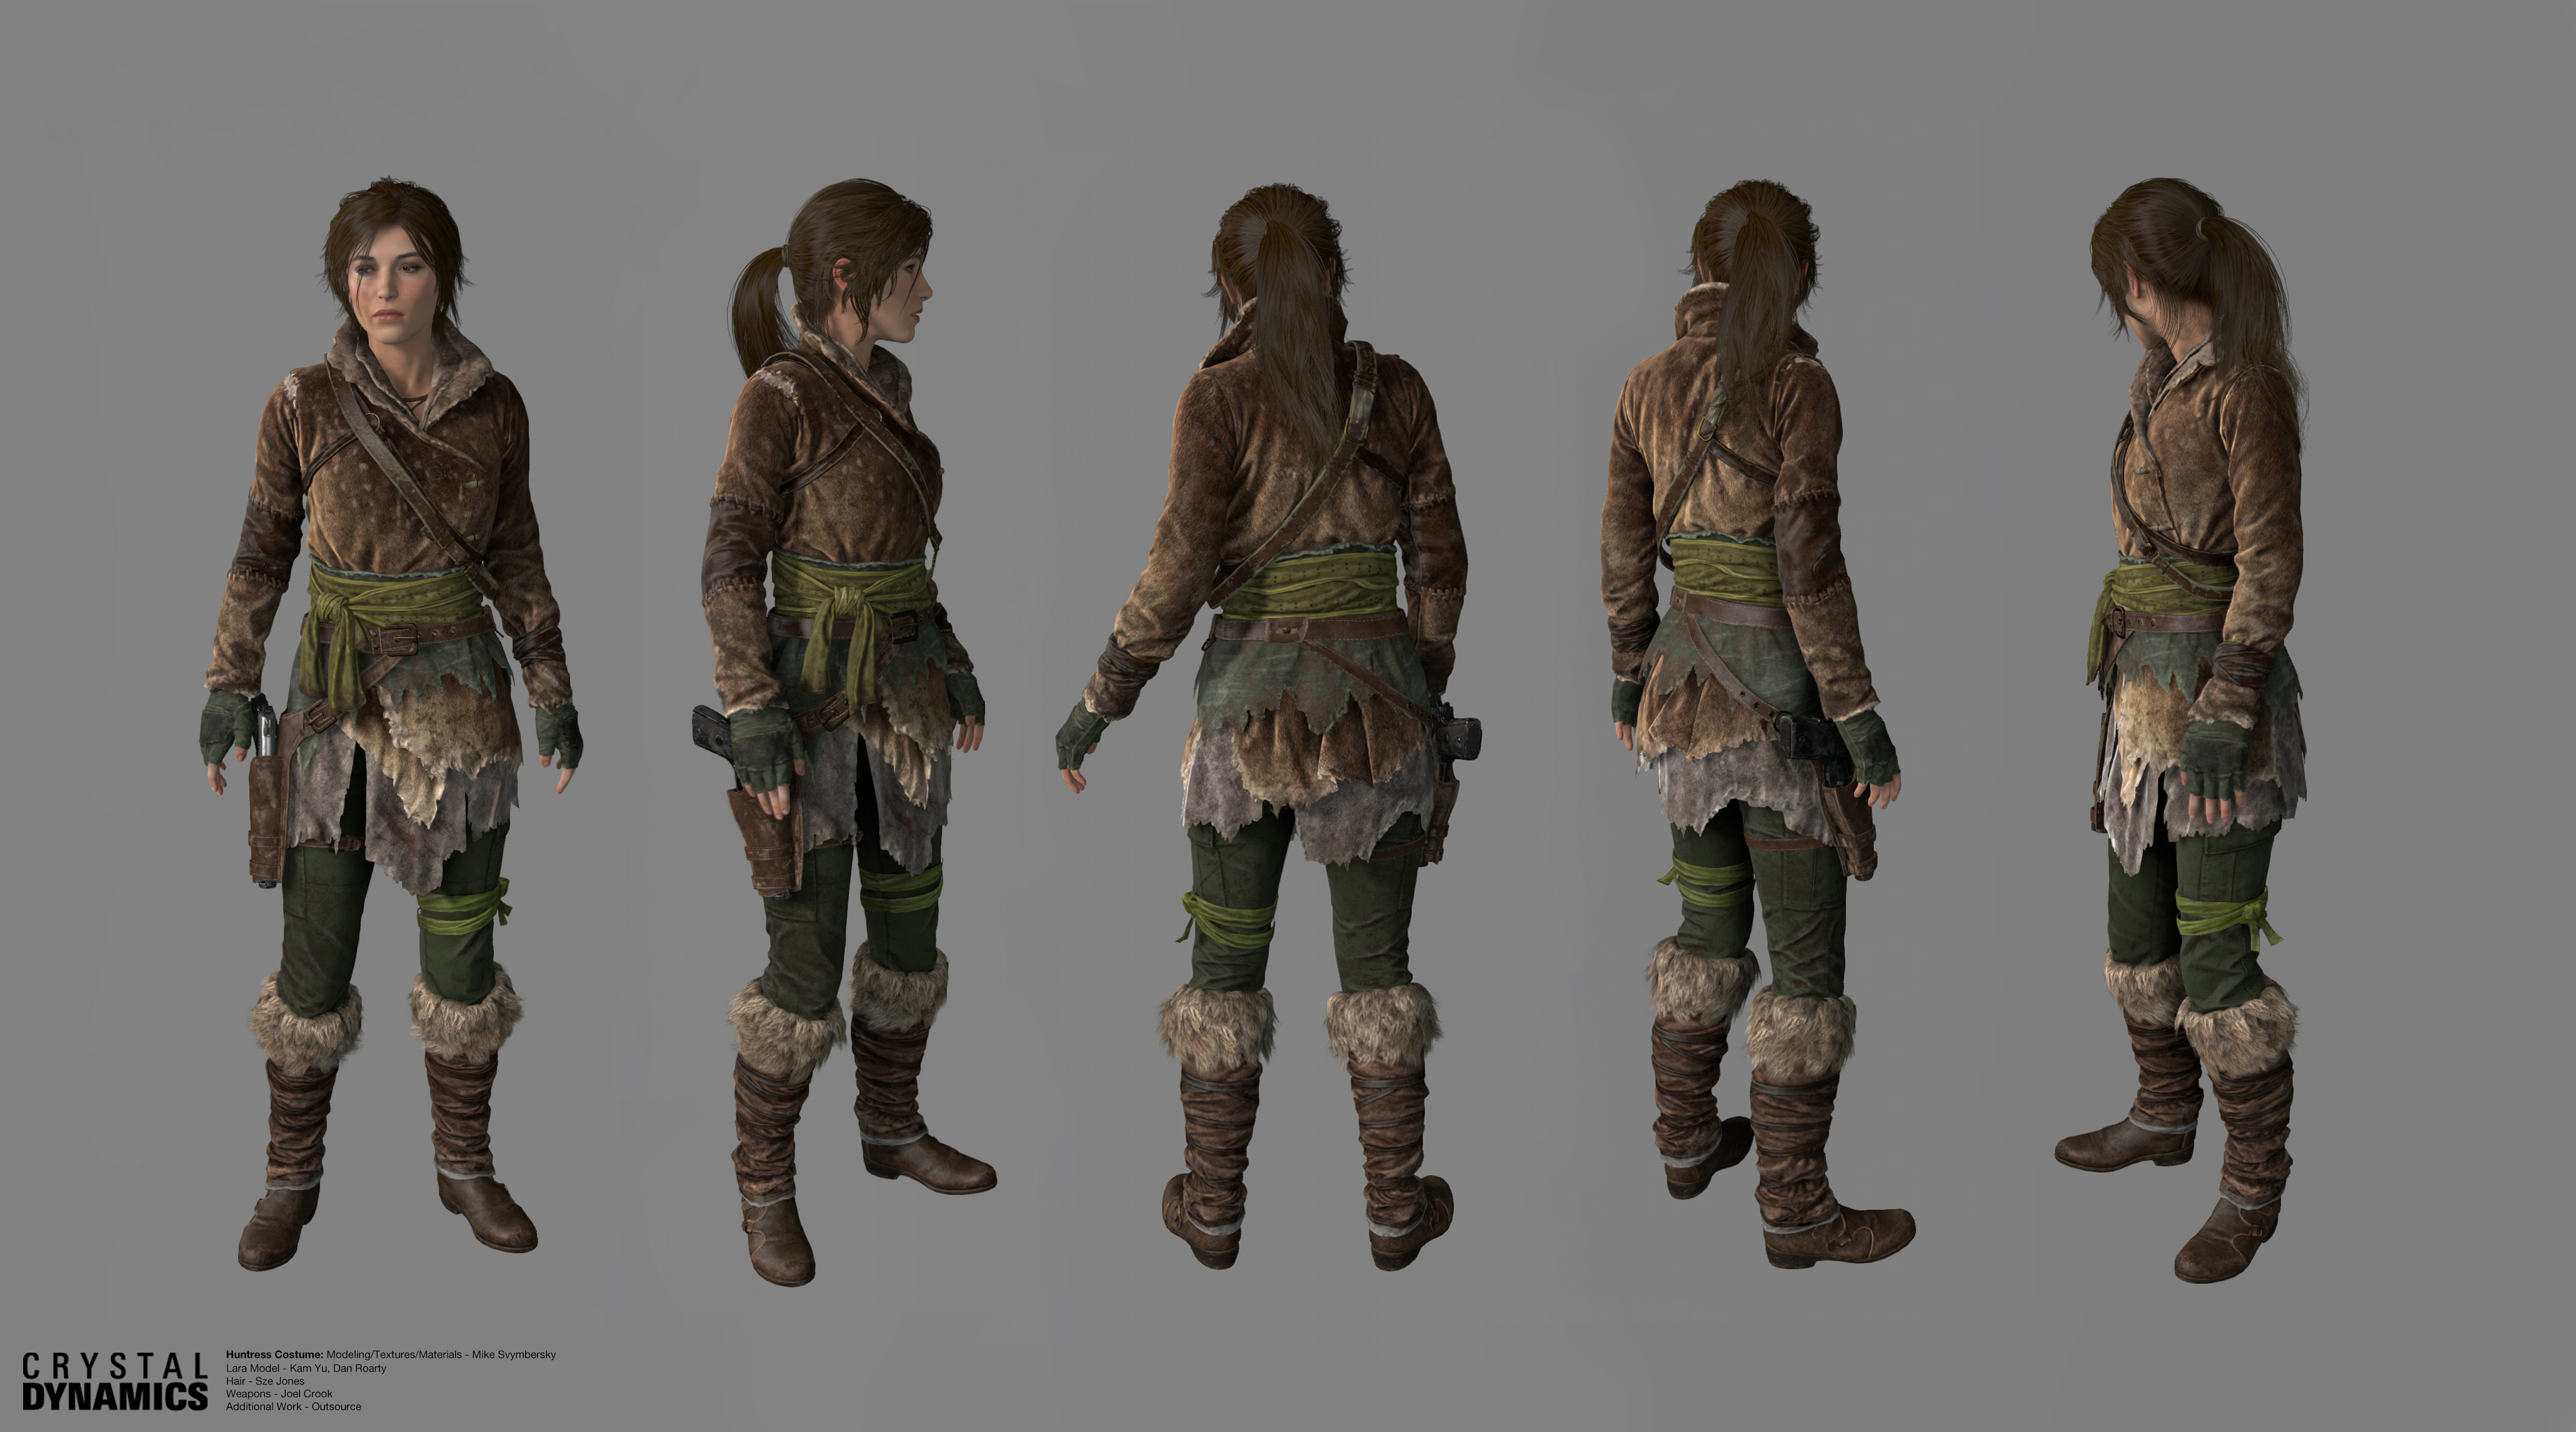 Tomb raider anniversary modding costumes texturing discussion